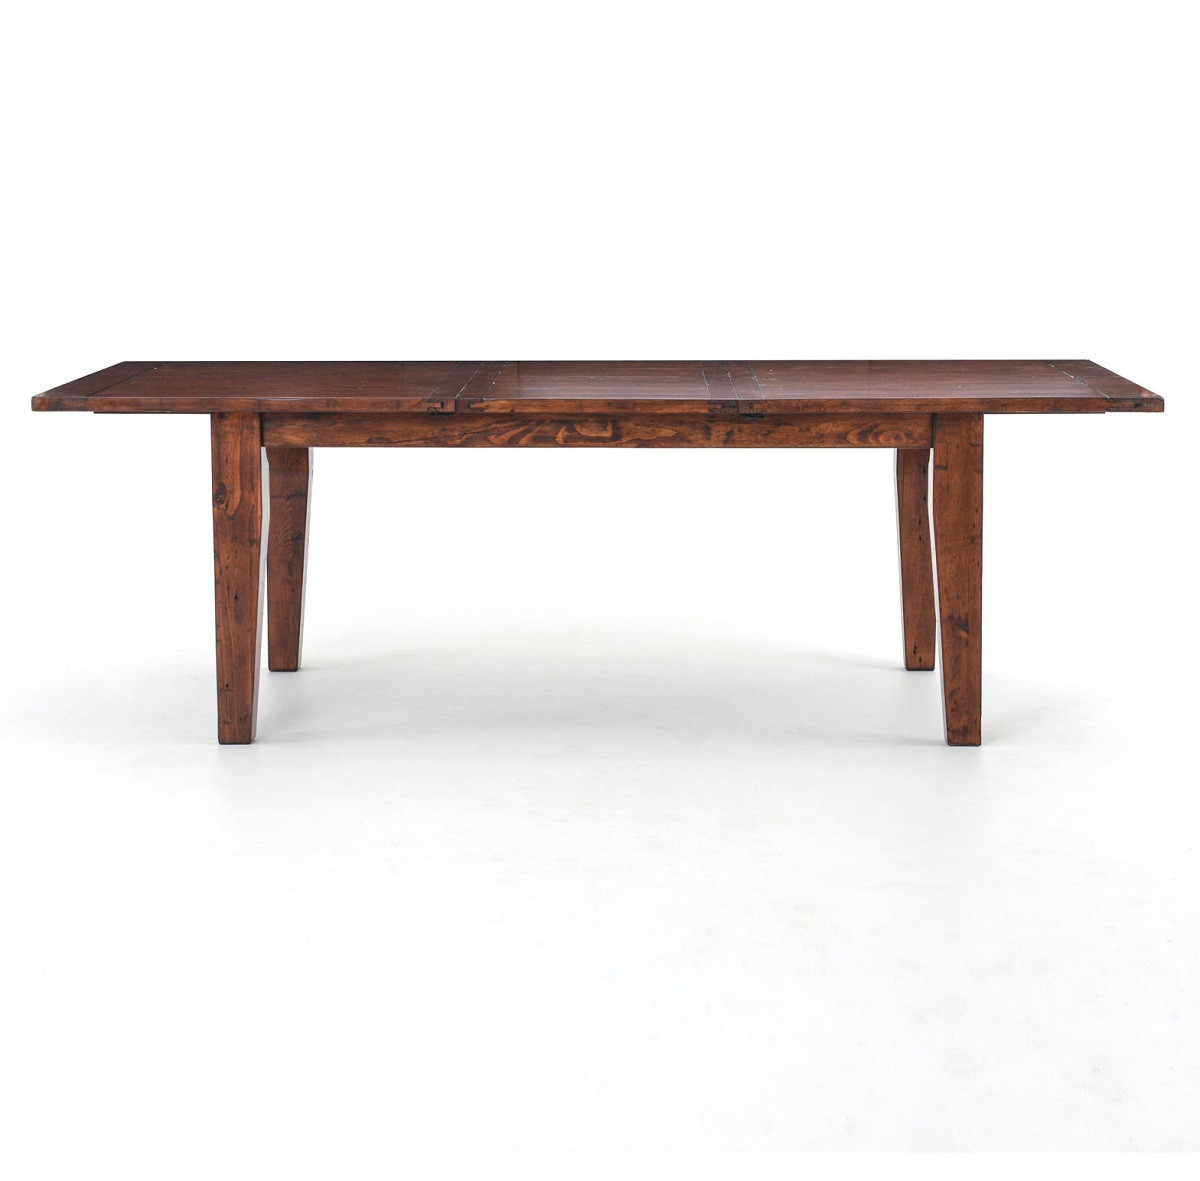 Coastal Reclaimed Wood Extending Dining Table 96quot Zin Home : CoastalReclaimedWoodExtendingDiningTableirishcoast33569142506735912801280 from www.zinhome.com size 1200 x 1181 jpeg 101kB